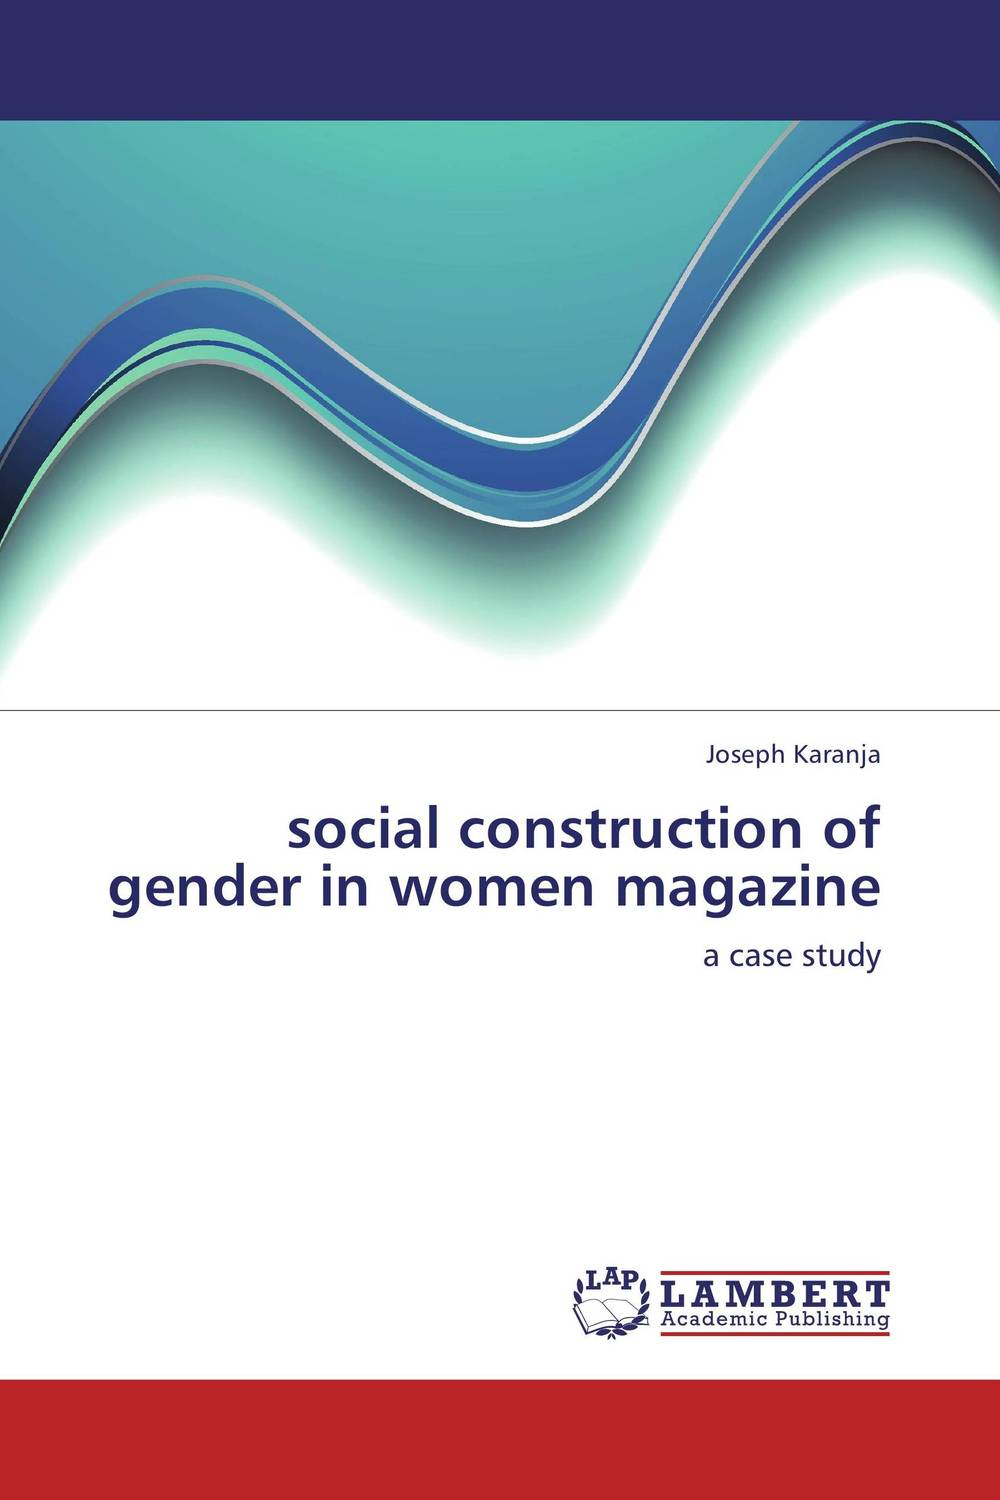 купить social construction of gender in women magazine недорого